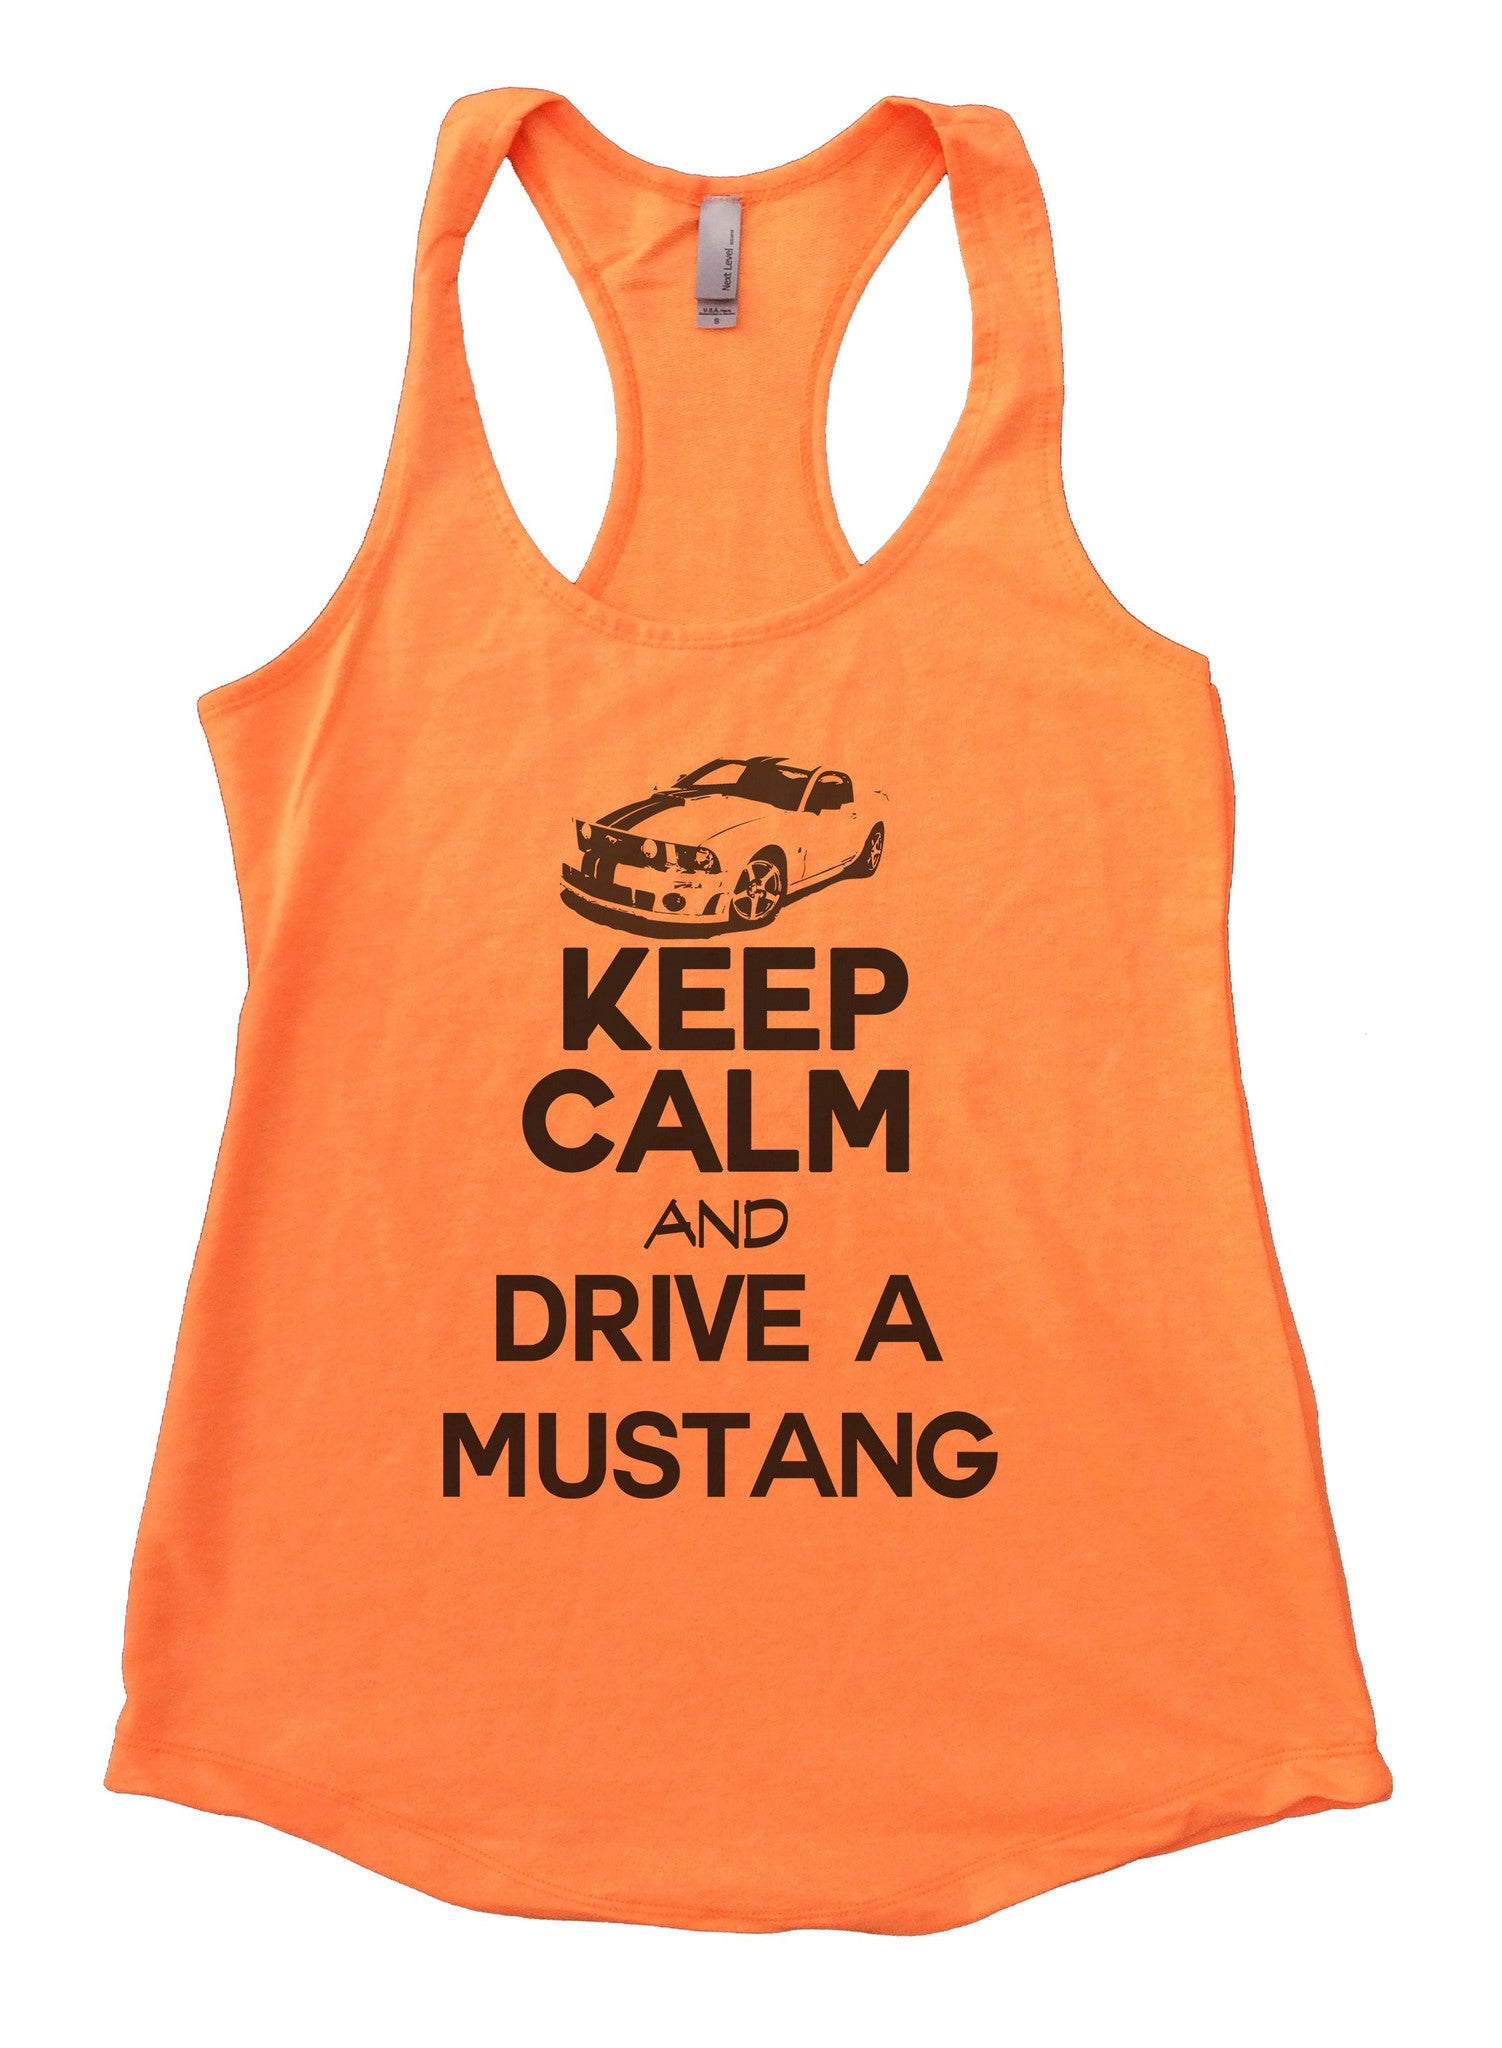 Keep Calm And Drive A Mustang Womens Workout Tank Top 2119 - Funny Shirts Tank Tops Burnouts and Triblends  - 6